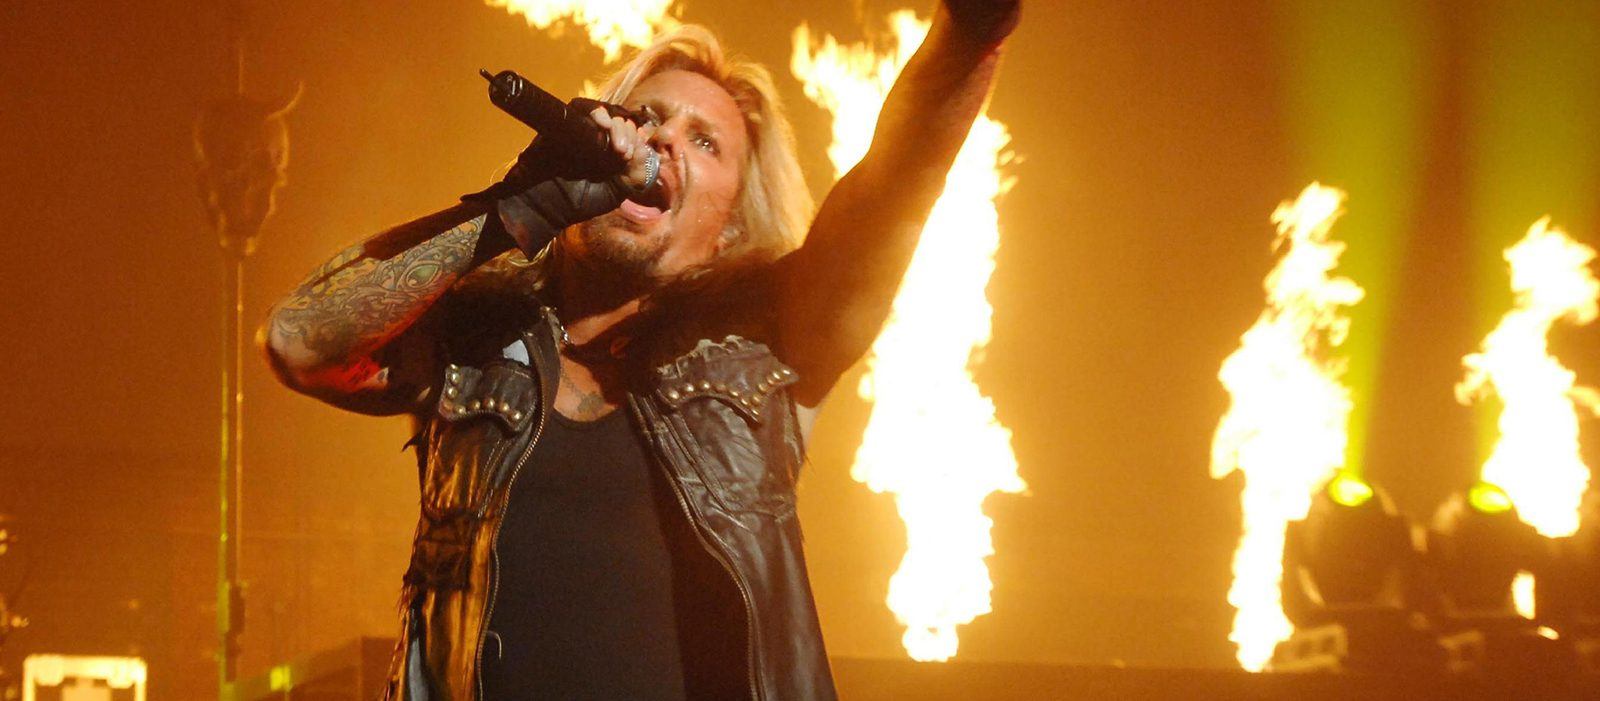 Vince Neil from Motley Crue performing at Hammersmith Apollo London,England